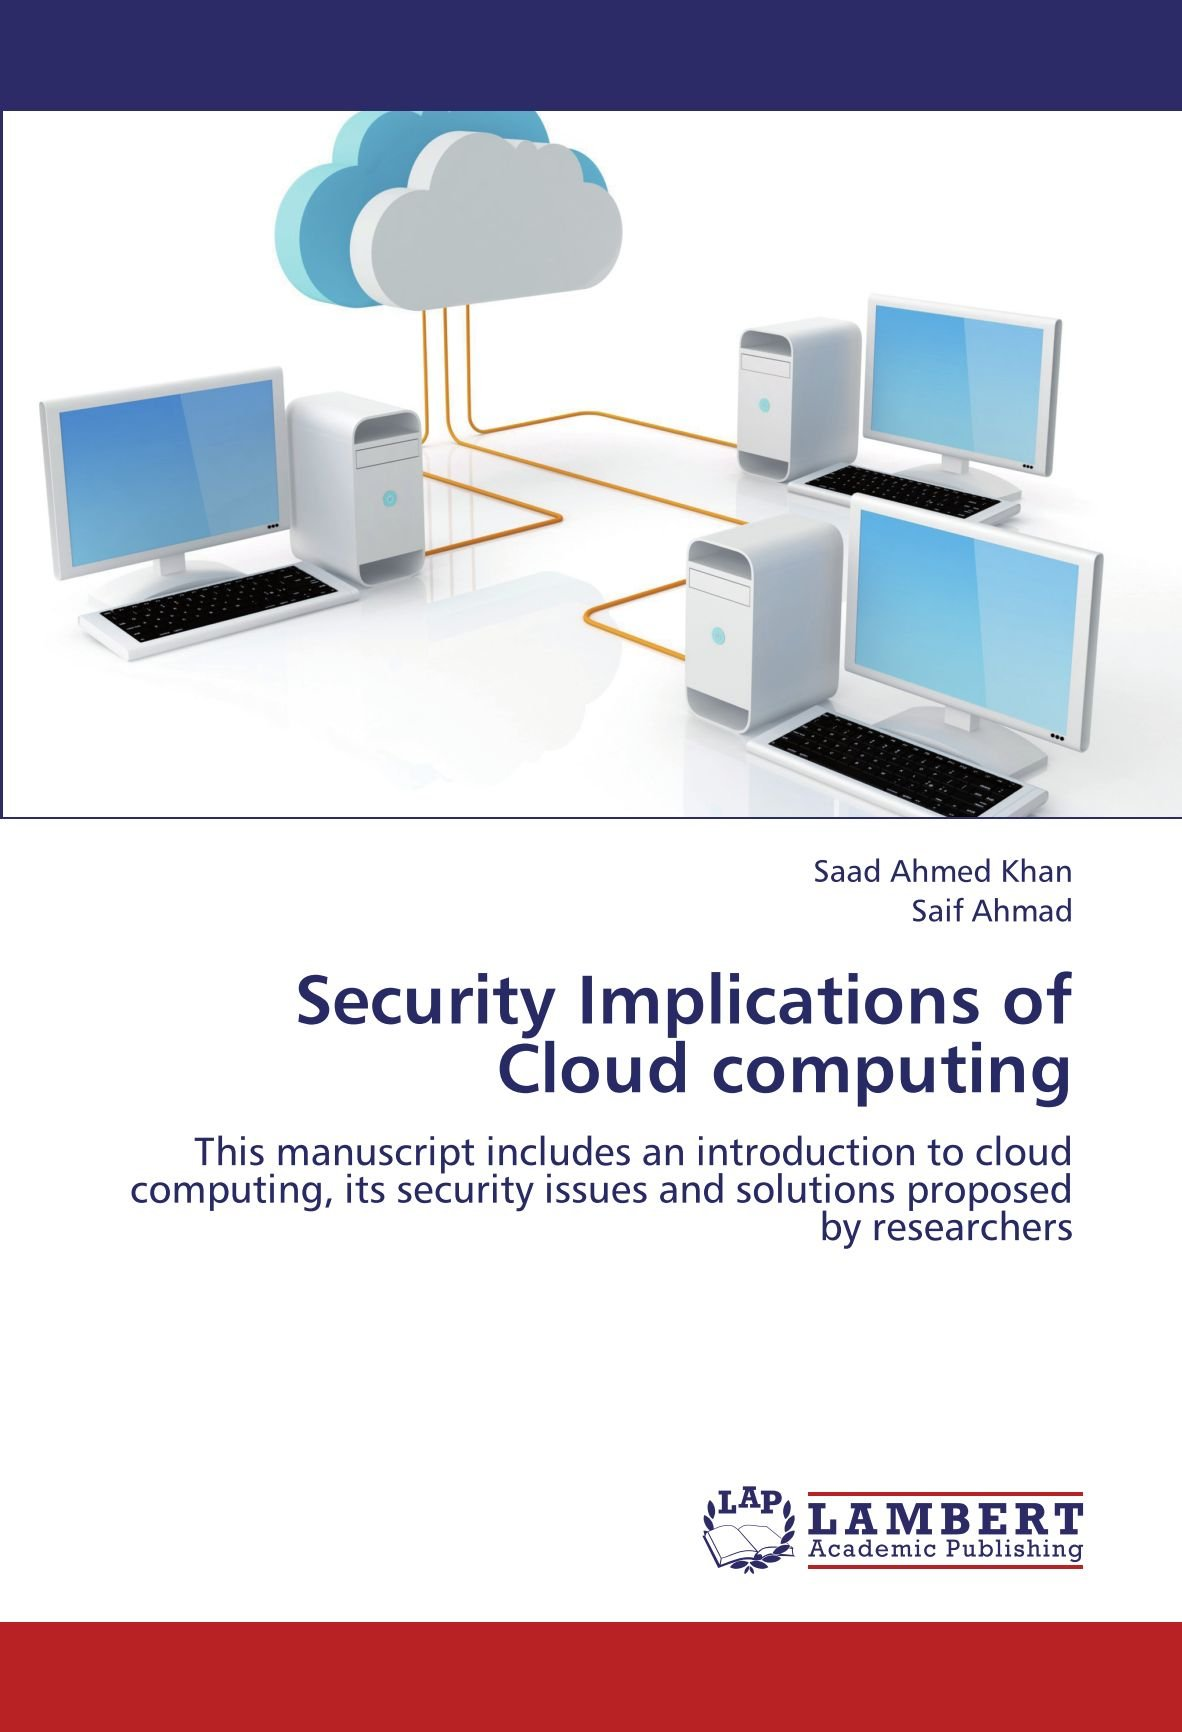 Amazon Com Security Implications Of Cloud Computing This Manuscript Includes An Introduction To Cloud Computing Its Security Issues And Solutions Proposed By Researchers 9783659133978 Khan Saad Ahmed Ahmad Saif Books